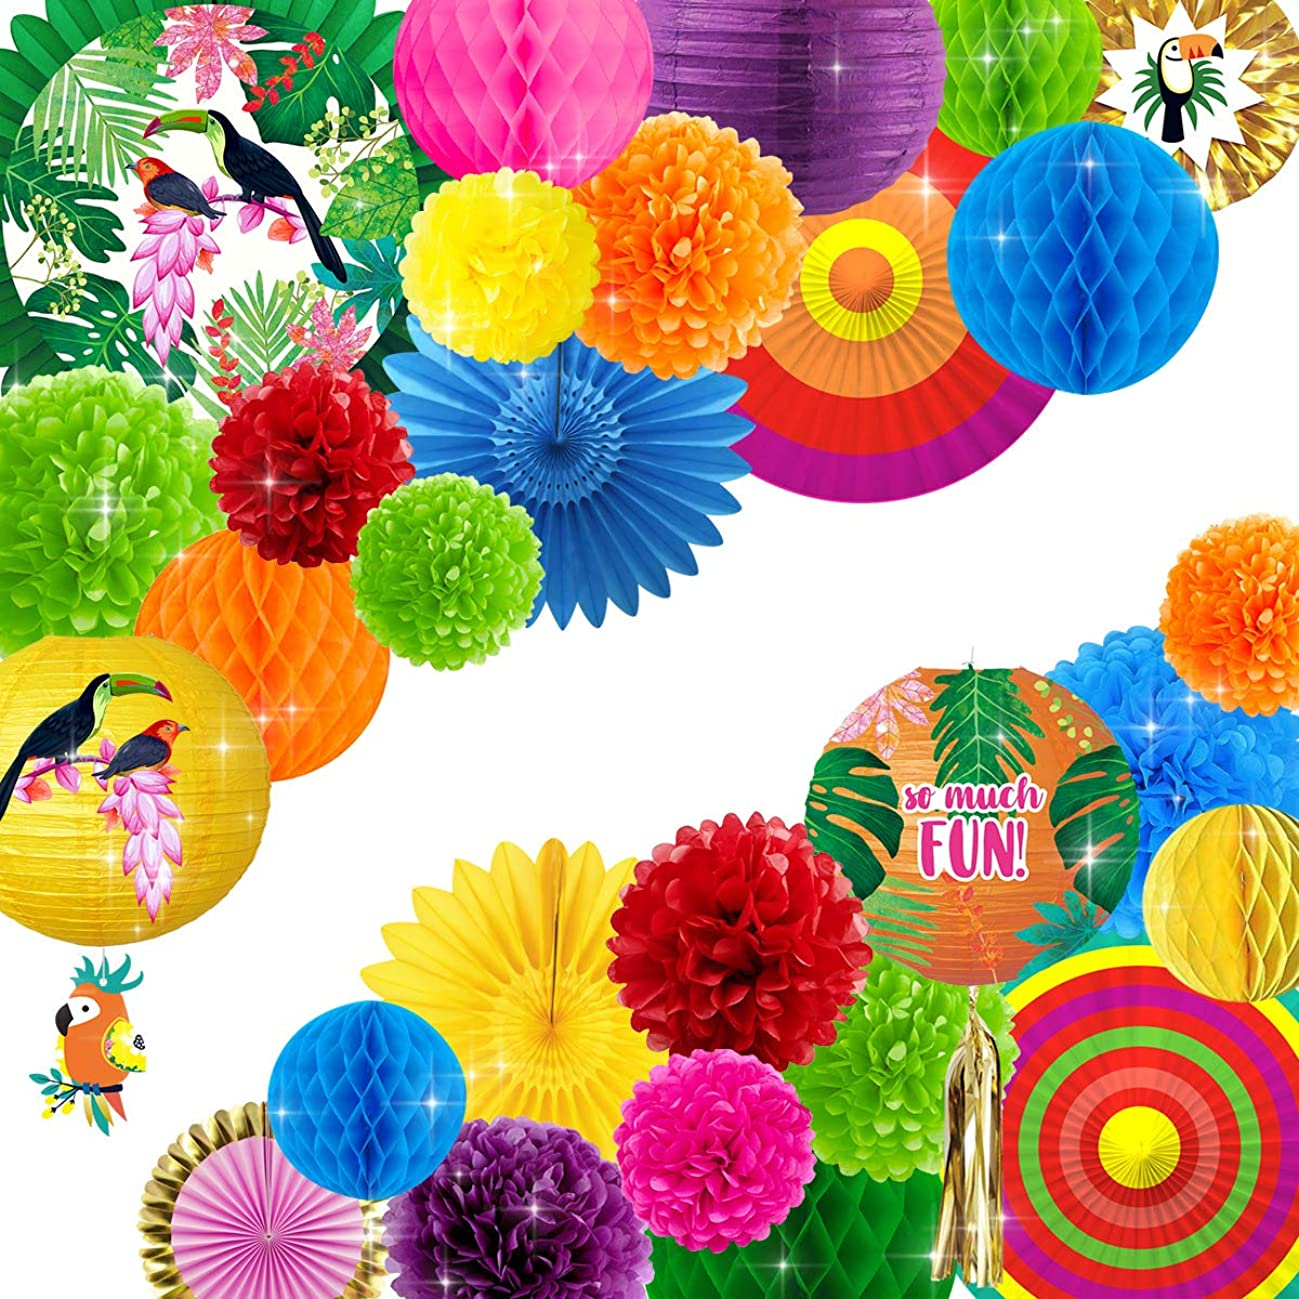 NICROLANDEE 28PCS Fiesta Party Decor, Summer Tropical Parrot Set Mexican Style Party Decor with Rainbow Tissue Pom poms Lantern and Fan for Wedding Bridal Shower Baby Shower Birthday Anniversary Party